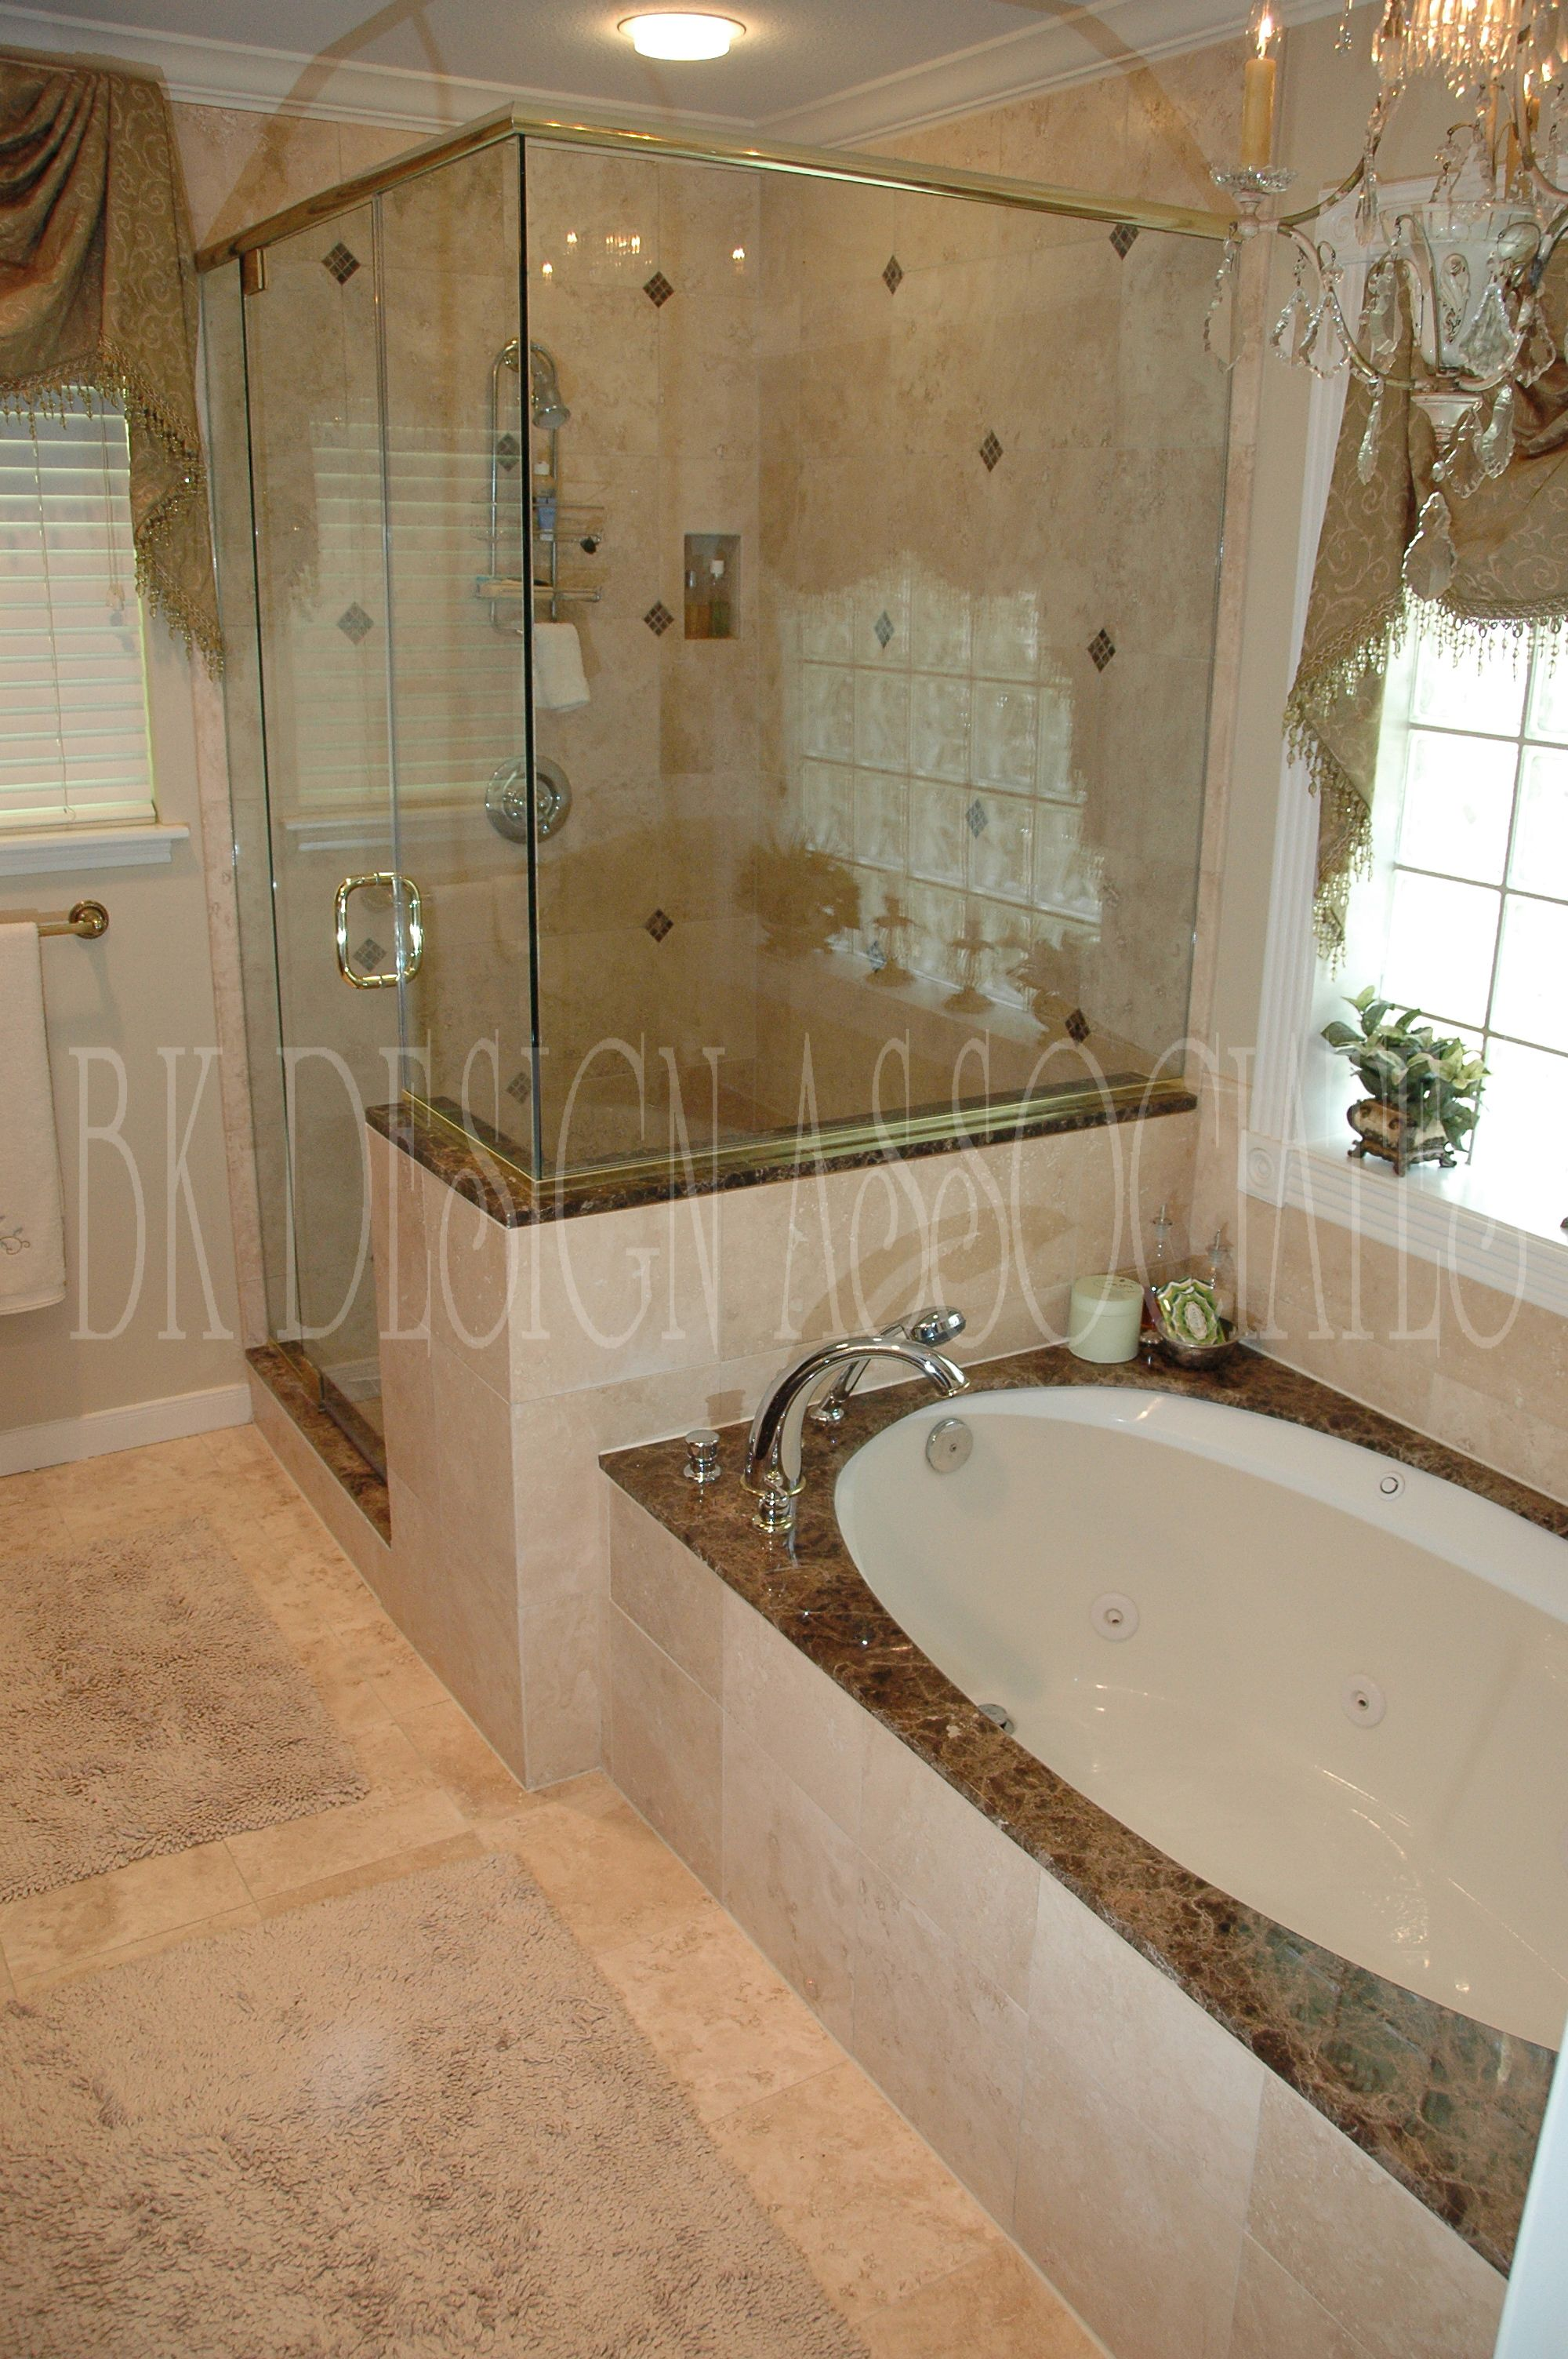 im totally gutting my master bath i have attached a proposed redesign - Master Bathrooms Designs